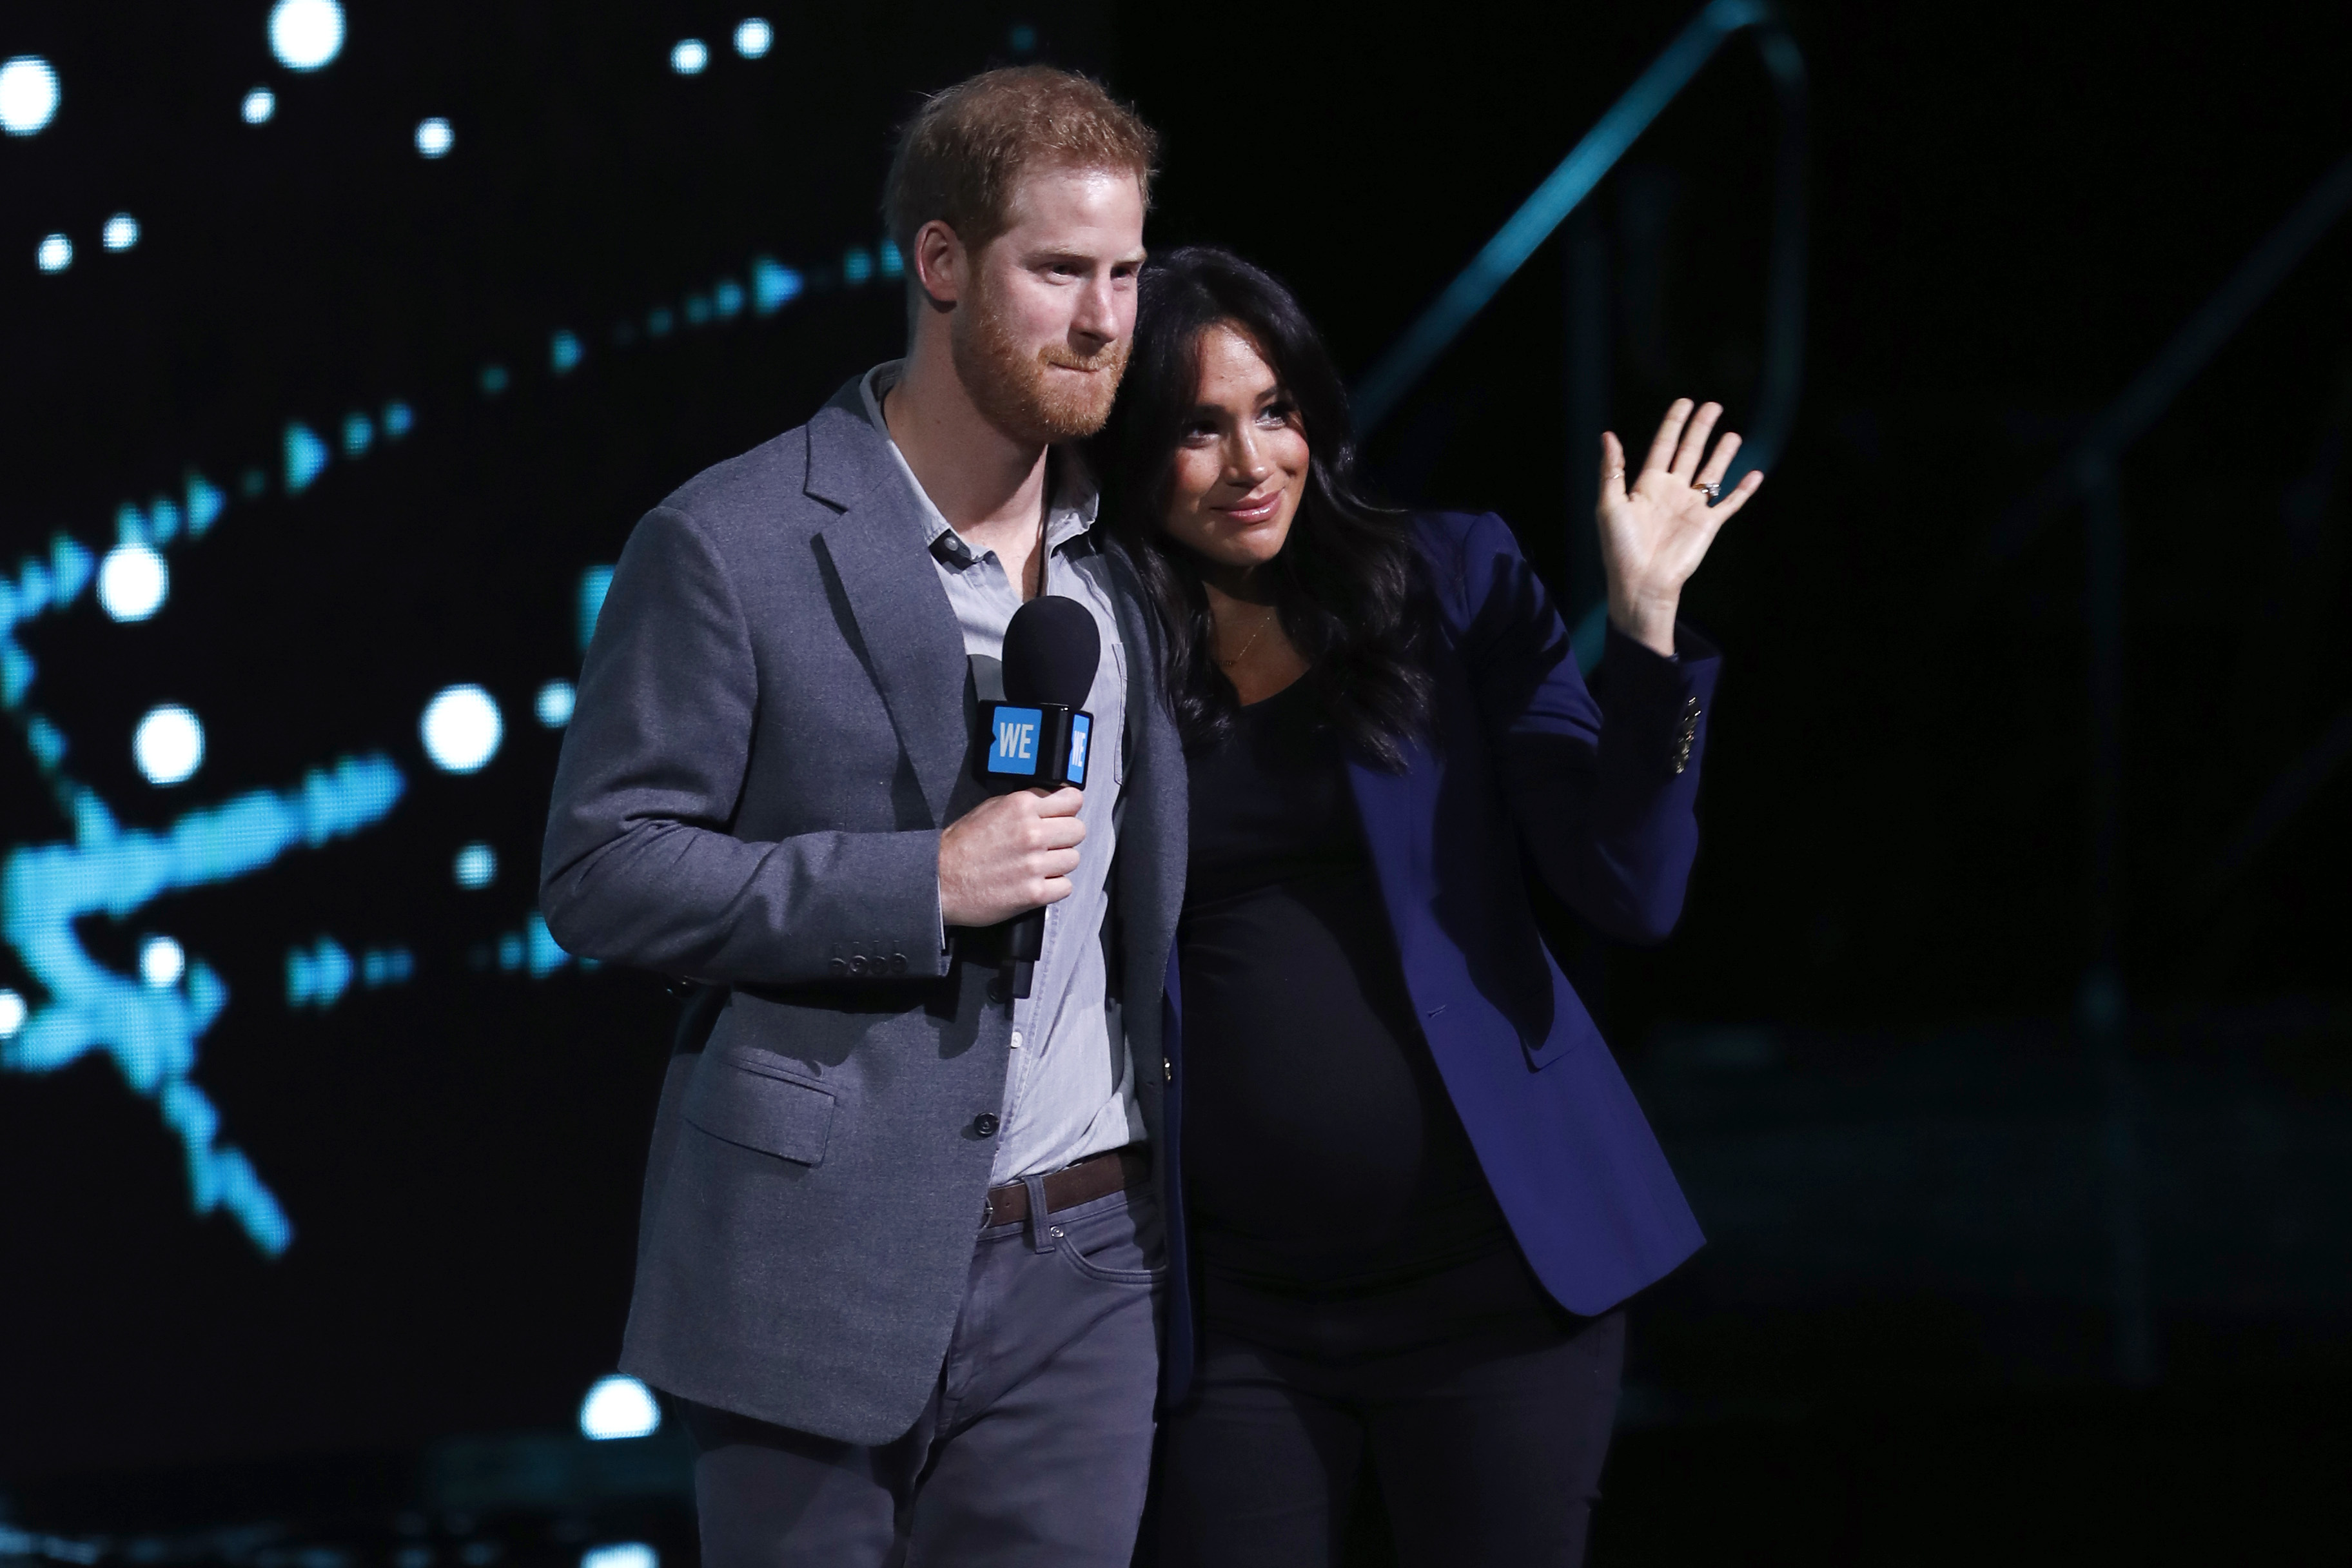 Meghan, Duchess of Sussex joins Prince Harry, Duke of Sussex and speak on stage during WE Day UK 2019 at The SSE Arena in London. (Photo by John Phillips/Getty Images)